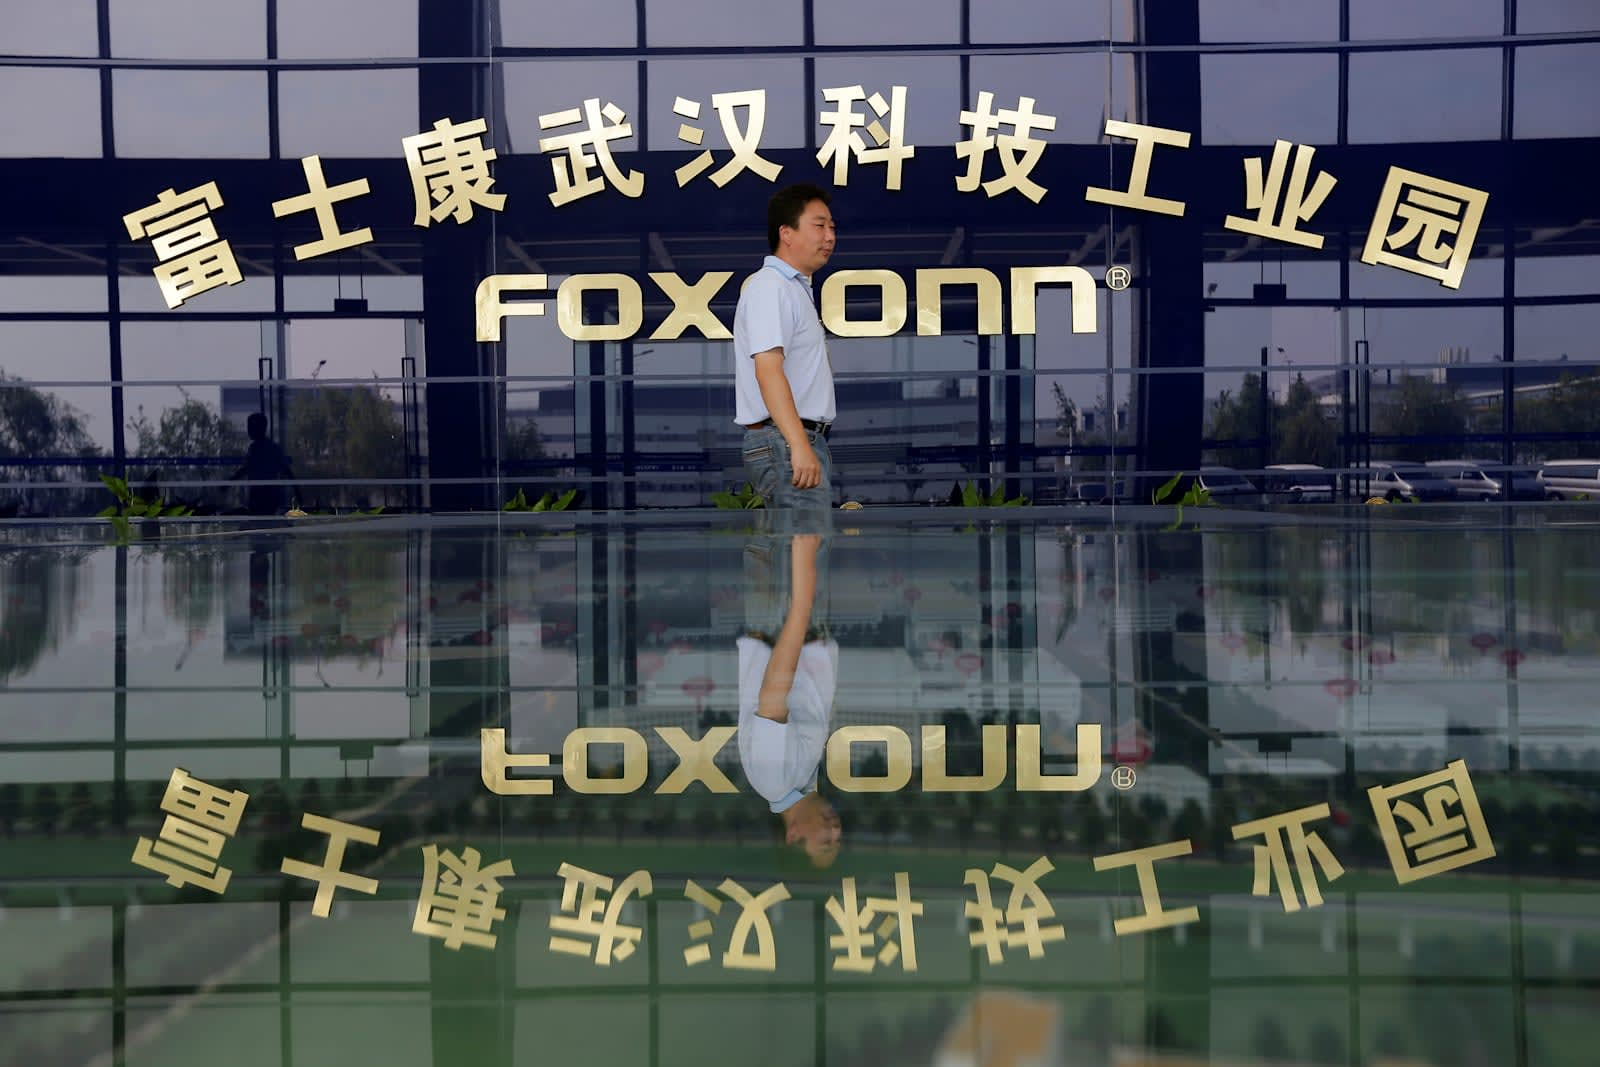 Foxconn exec faces 10 years for stealing 5,700 iPhones